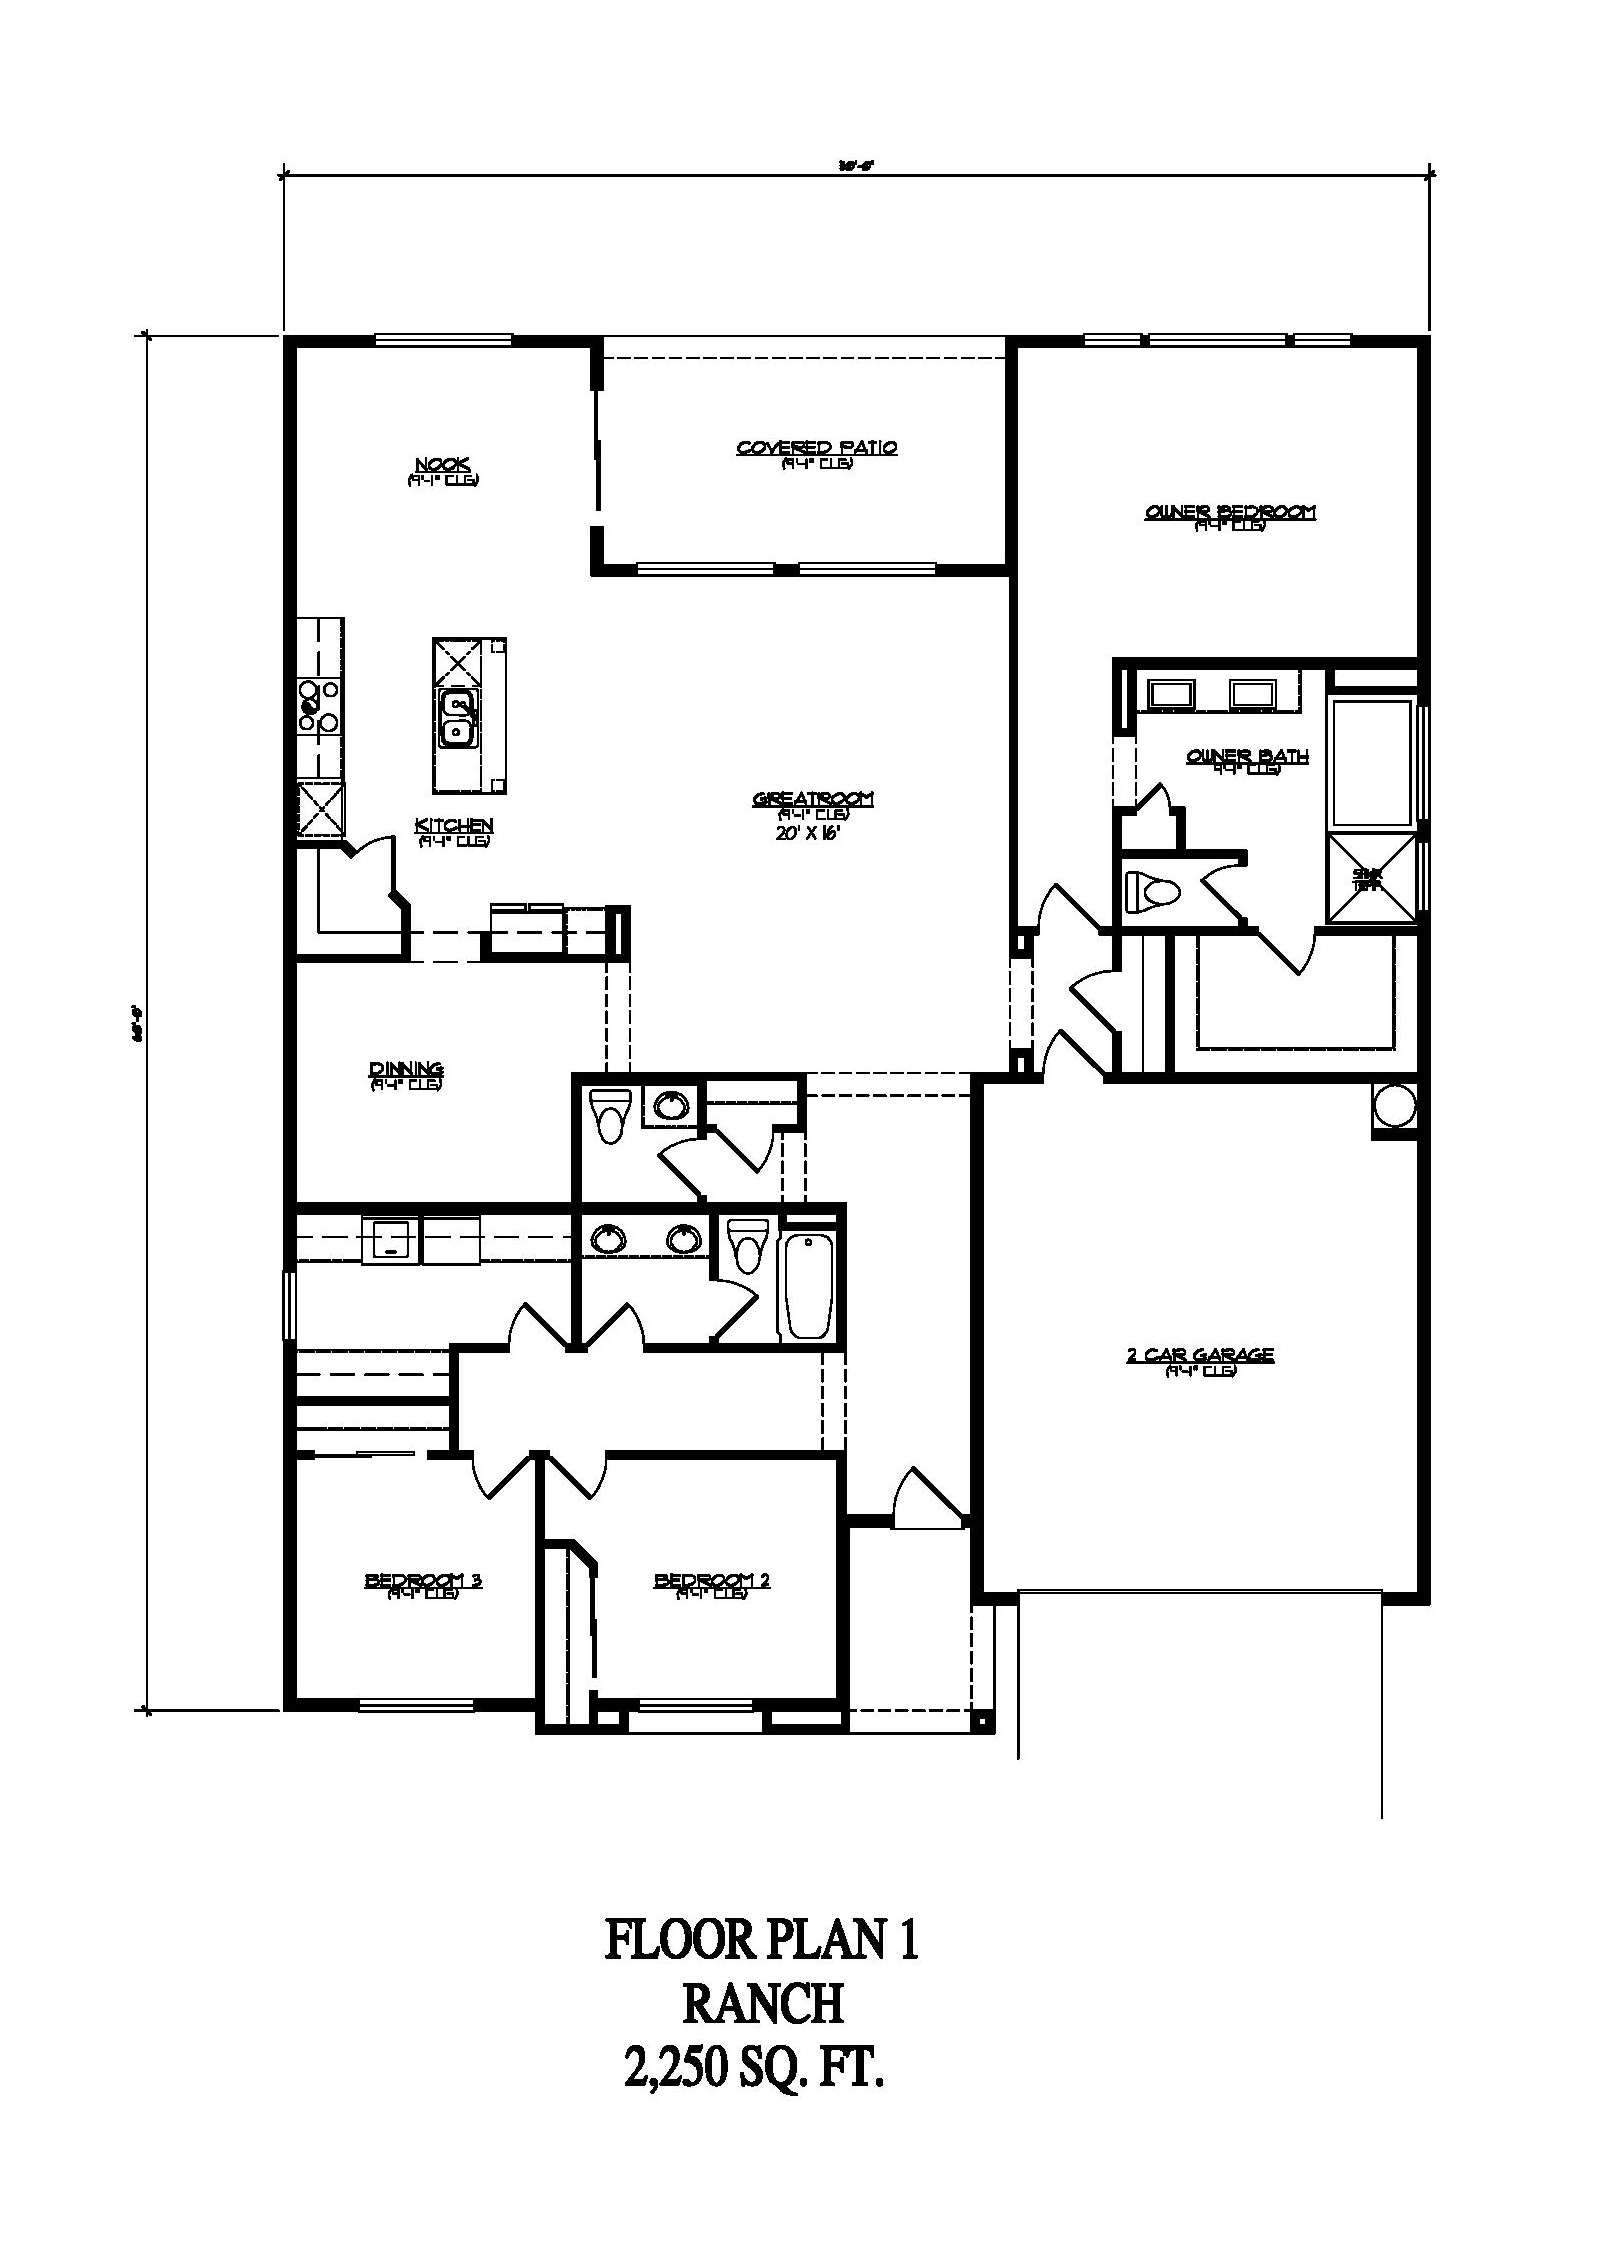 Floor Plan 1 - Ranch